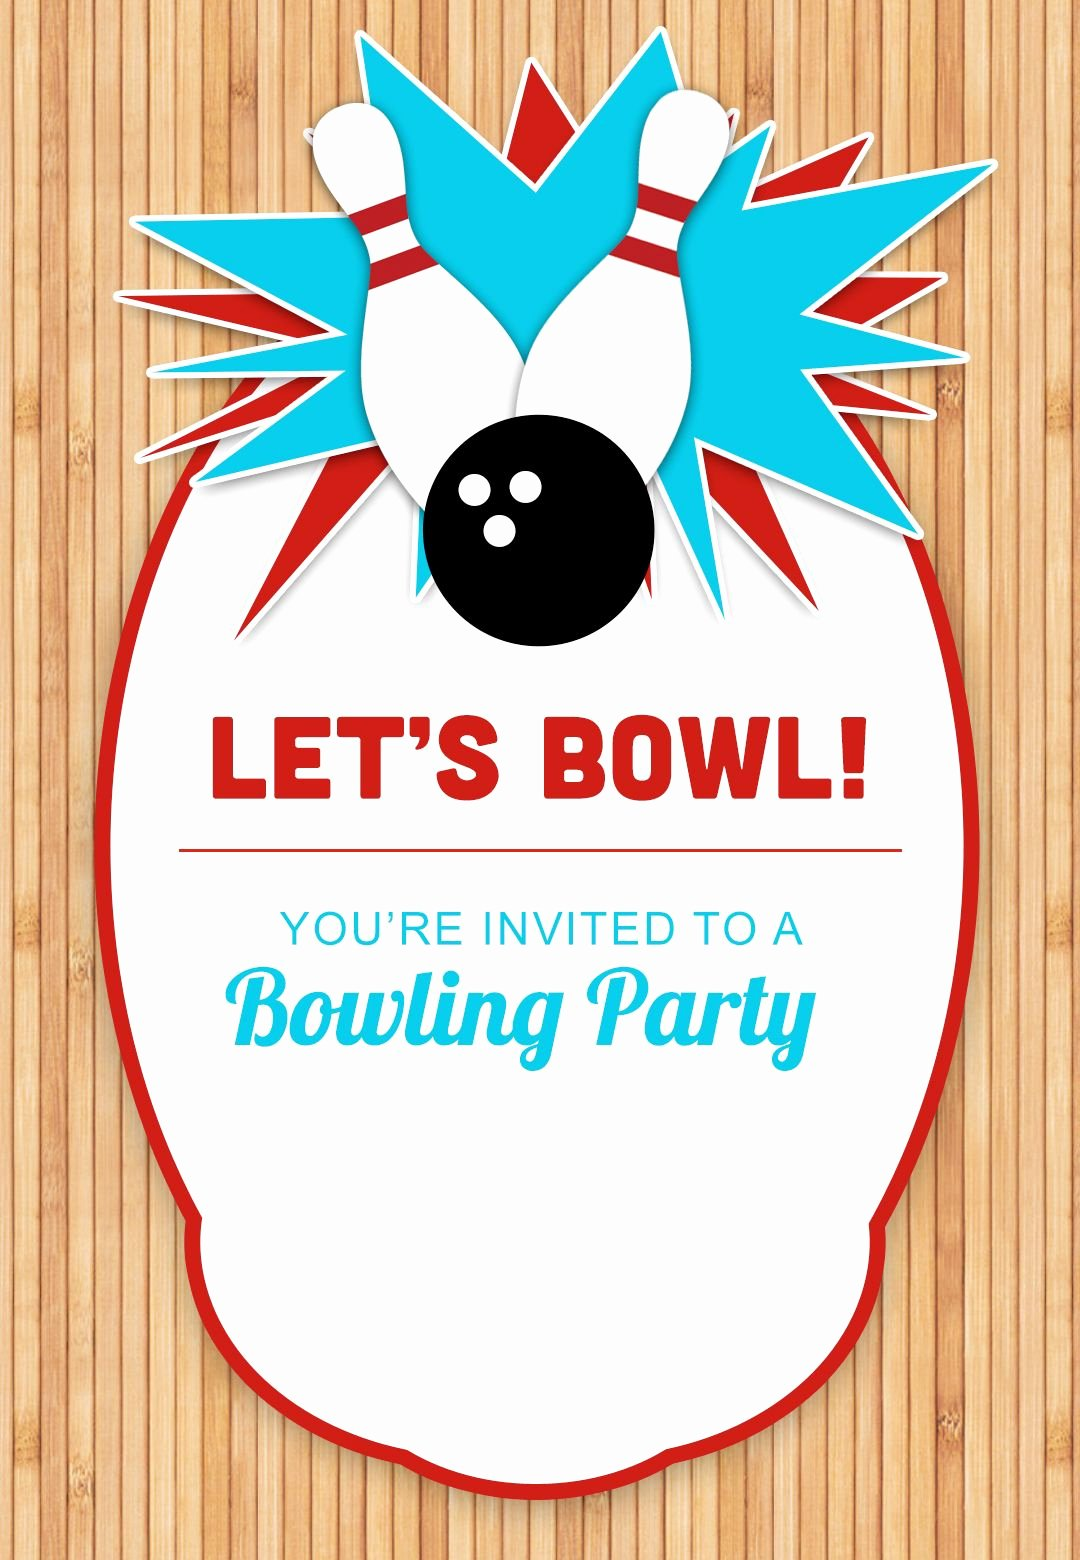 Bowling Party Invites Template New Bowling Party Free Printable Birthday Invitation